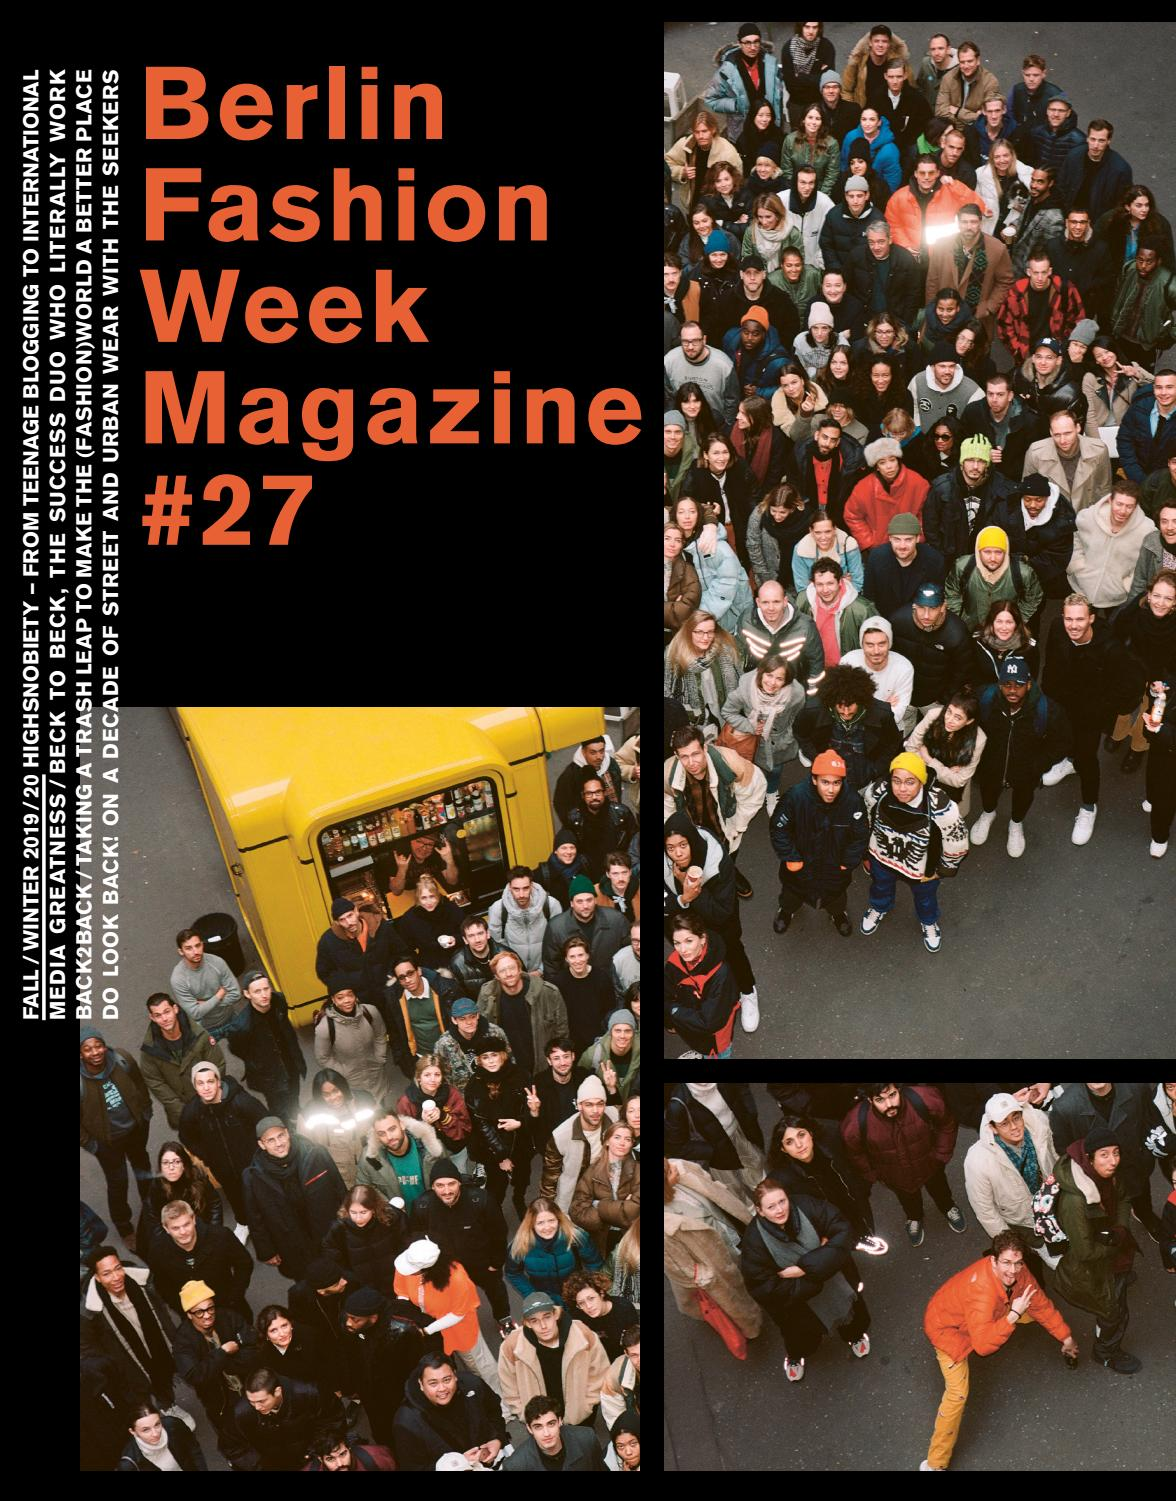 a23d0715add BERLIN FASHION WEEK MAGAZINE  27 by Berlin Fashion Week Magazine - issuu